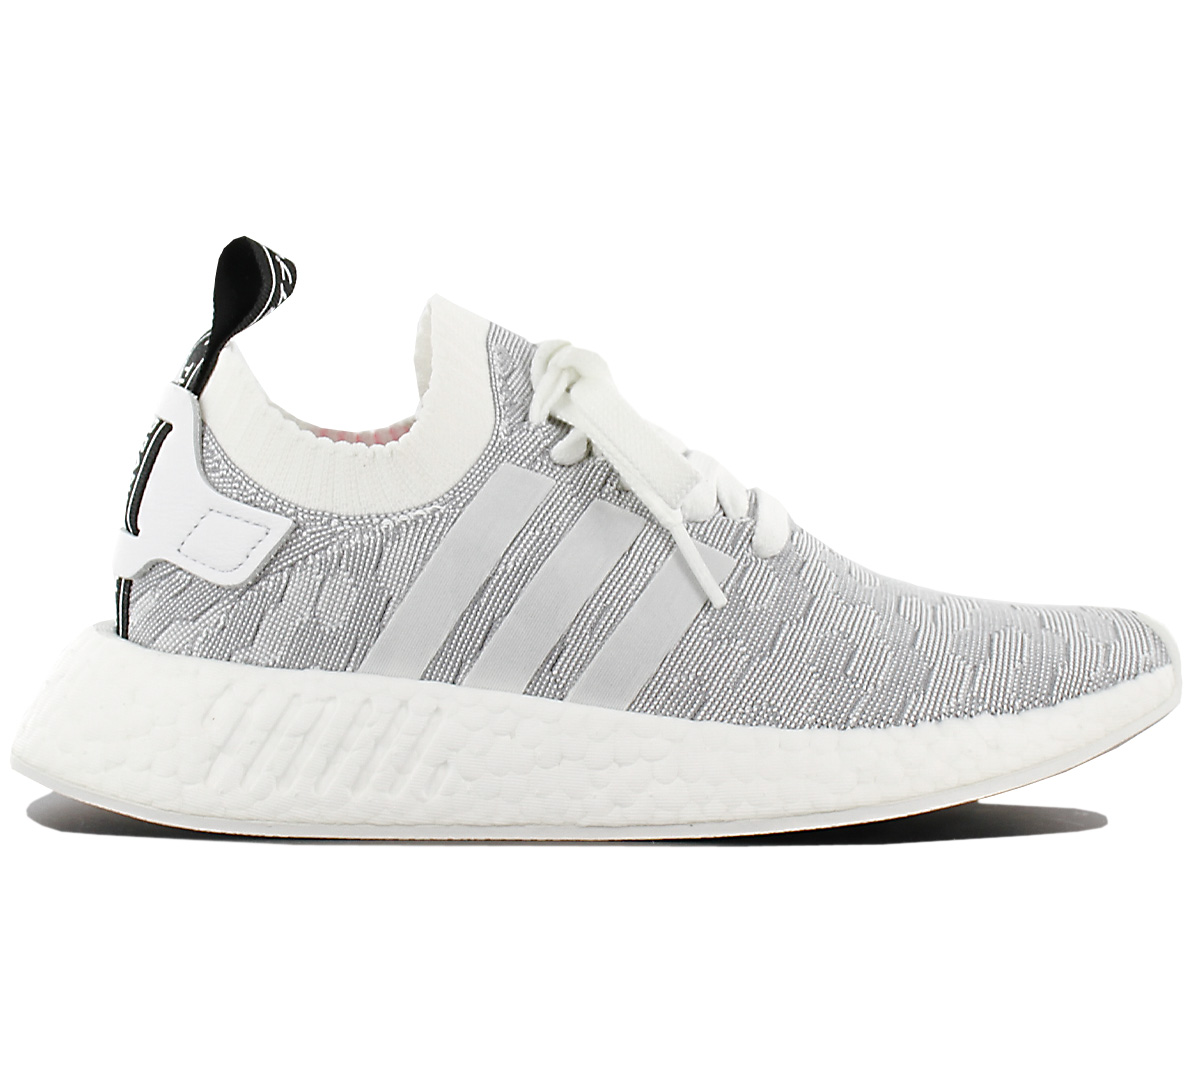 classic fit a3807 437a4 Details about Adidas Originals Nmd R2 Pk W Primeknit Women's Trainers Shoes  R1 BY9520